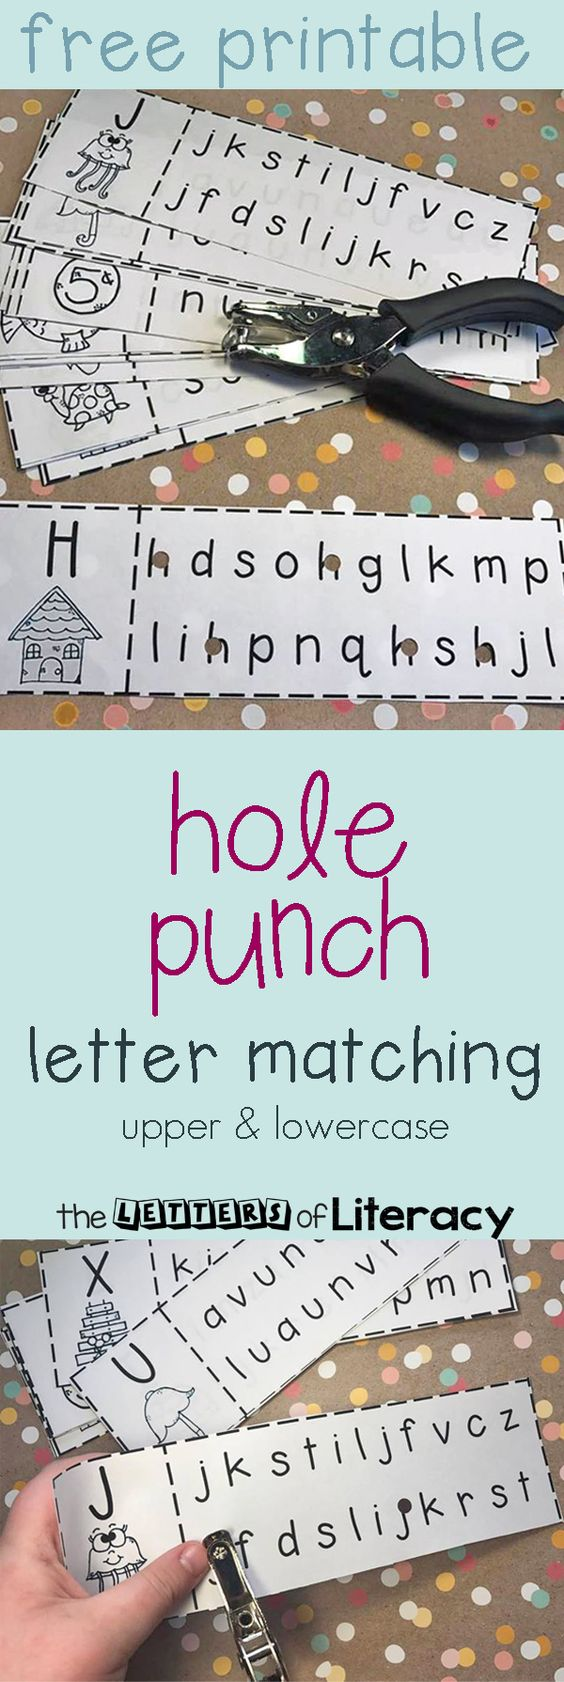 Upper & Lowercase Letter Recognition Matching Hole Punch Activity | Kind